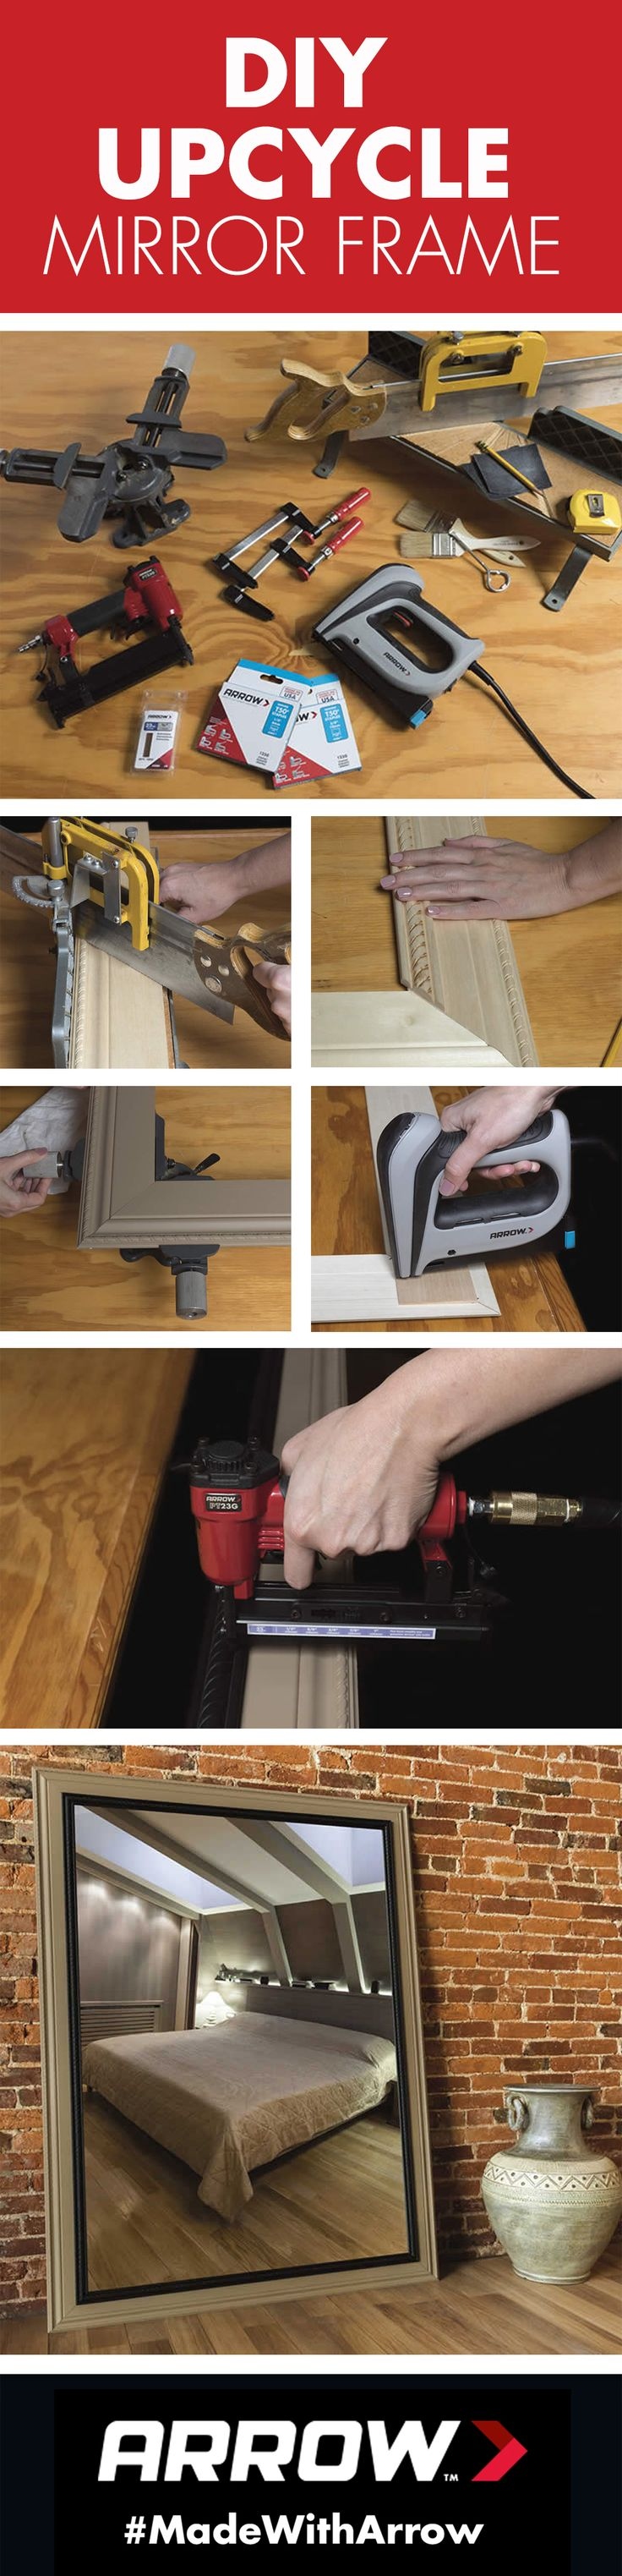 Build a frame for your full-length mirror with wood, wood glue and a staple gun like Arrow's T50ACD Compact Electric Staple Gun. Click for the full tutorial! www.arrowfastener.com